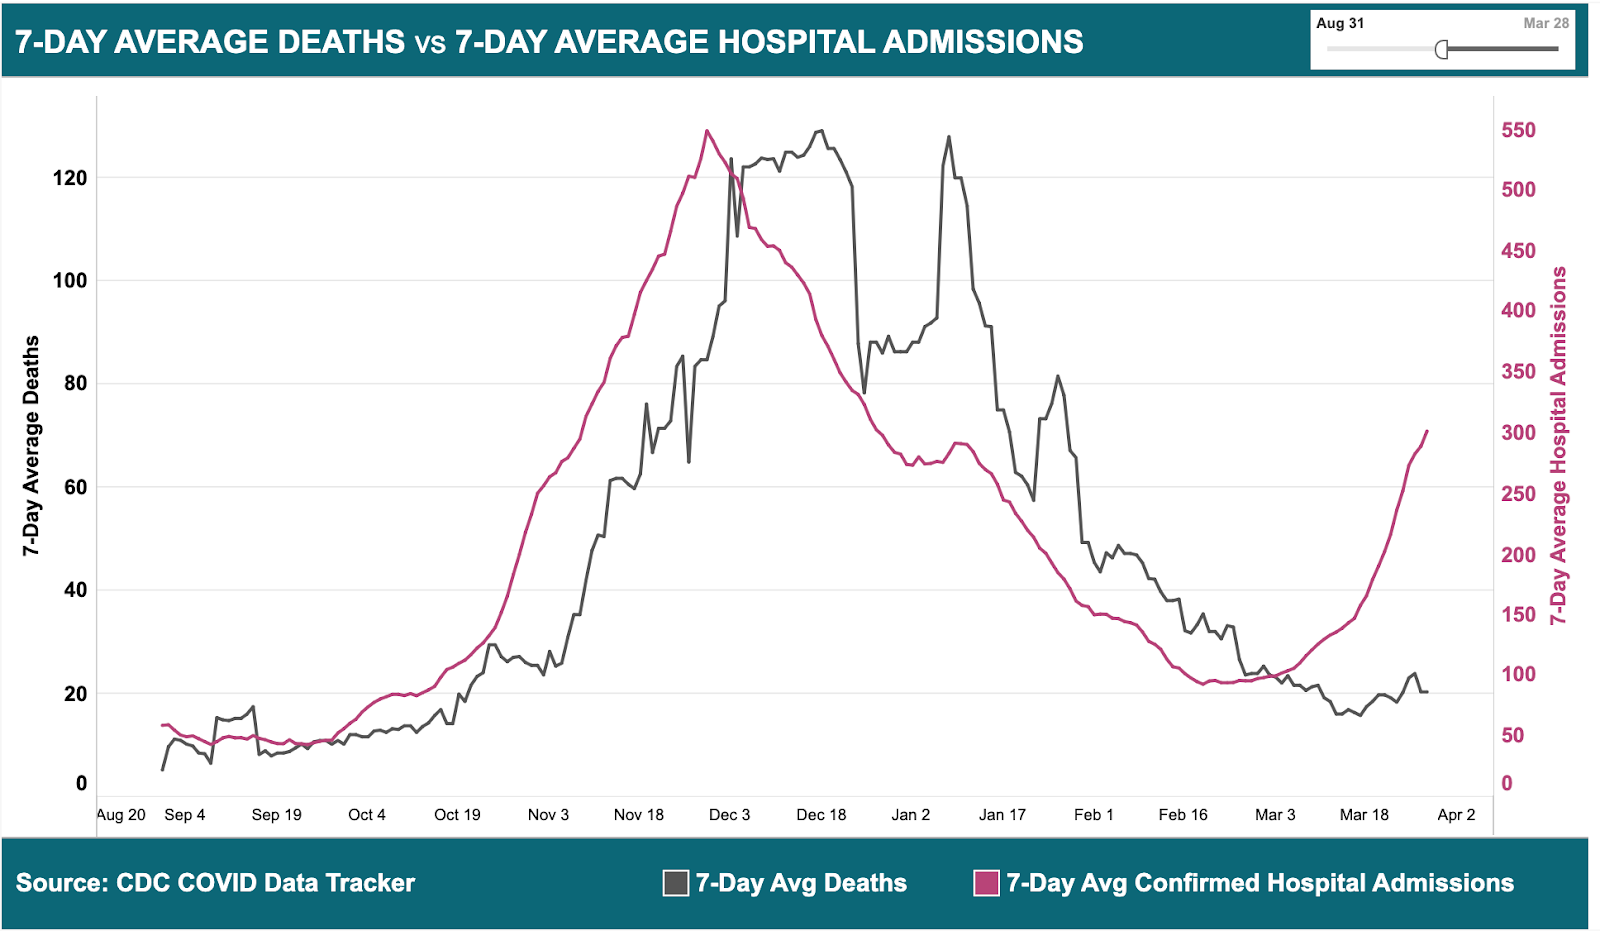 A line graph showing Michigan's 7-day average deaths versus hospital admissions